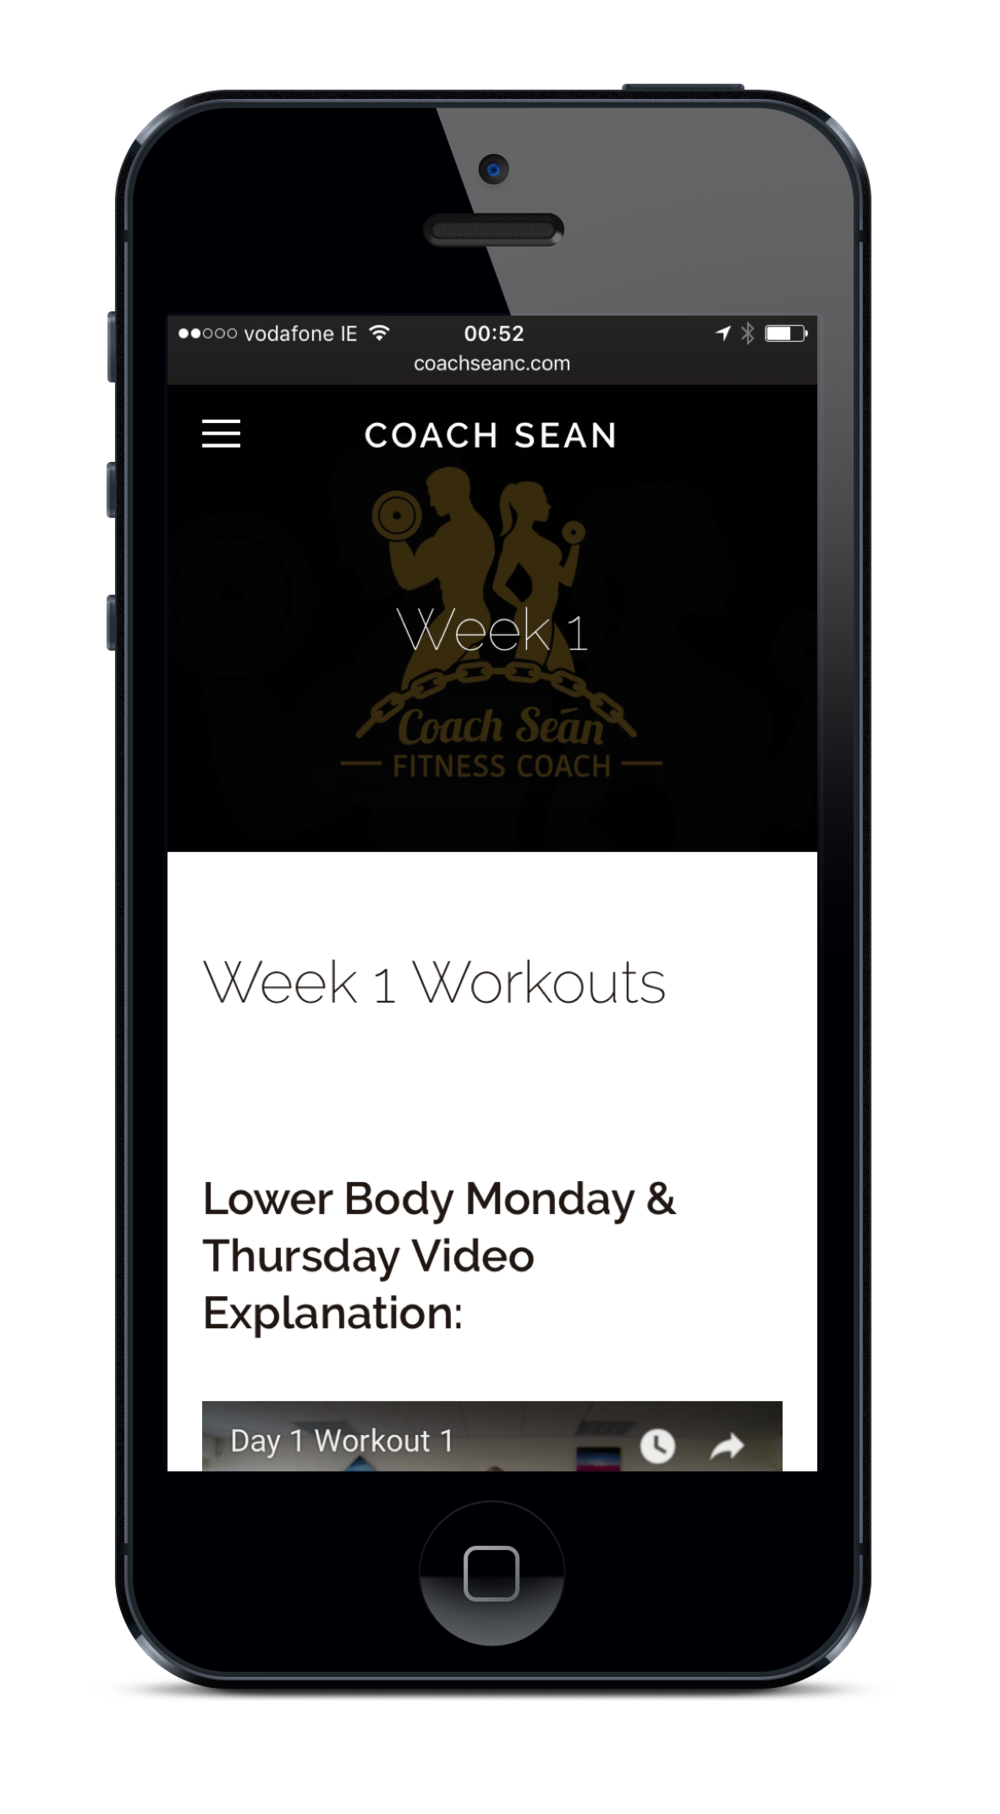 iphone pdf programme workout program sets reps exercise move strength conditioning online challenge january 1 2018